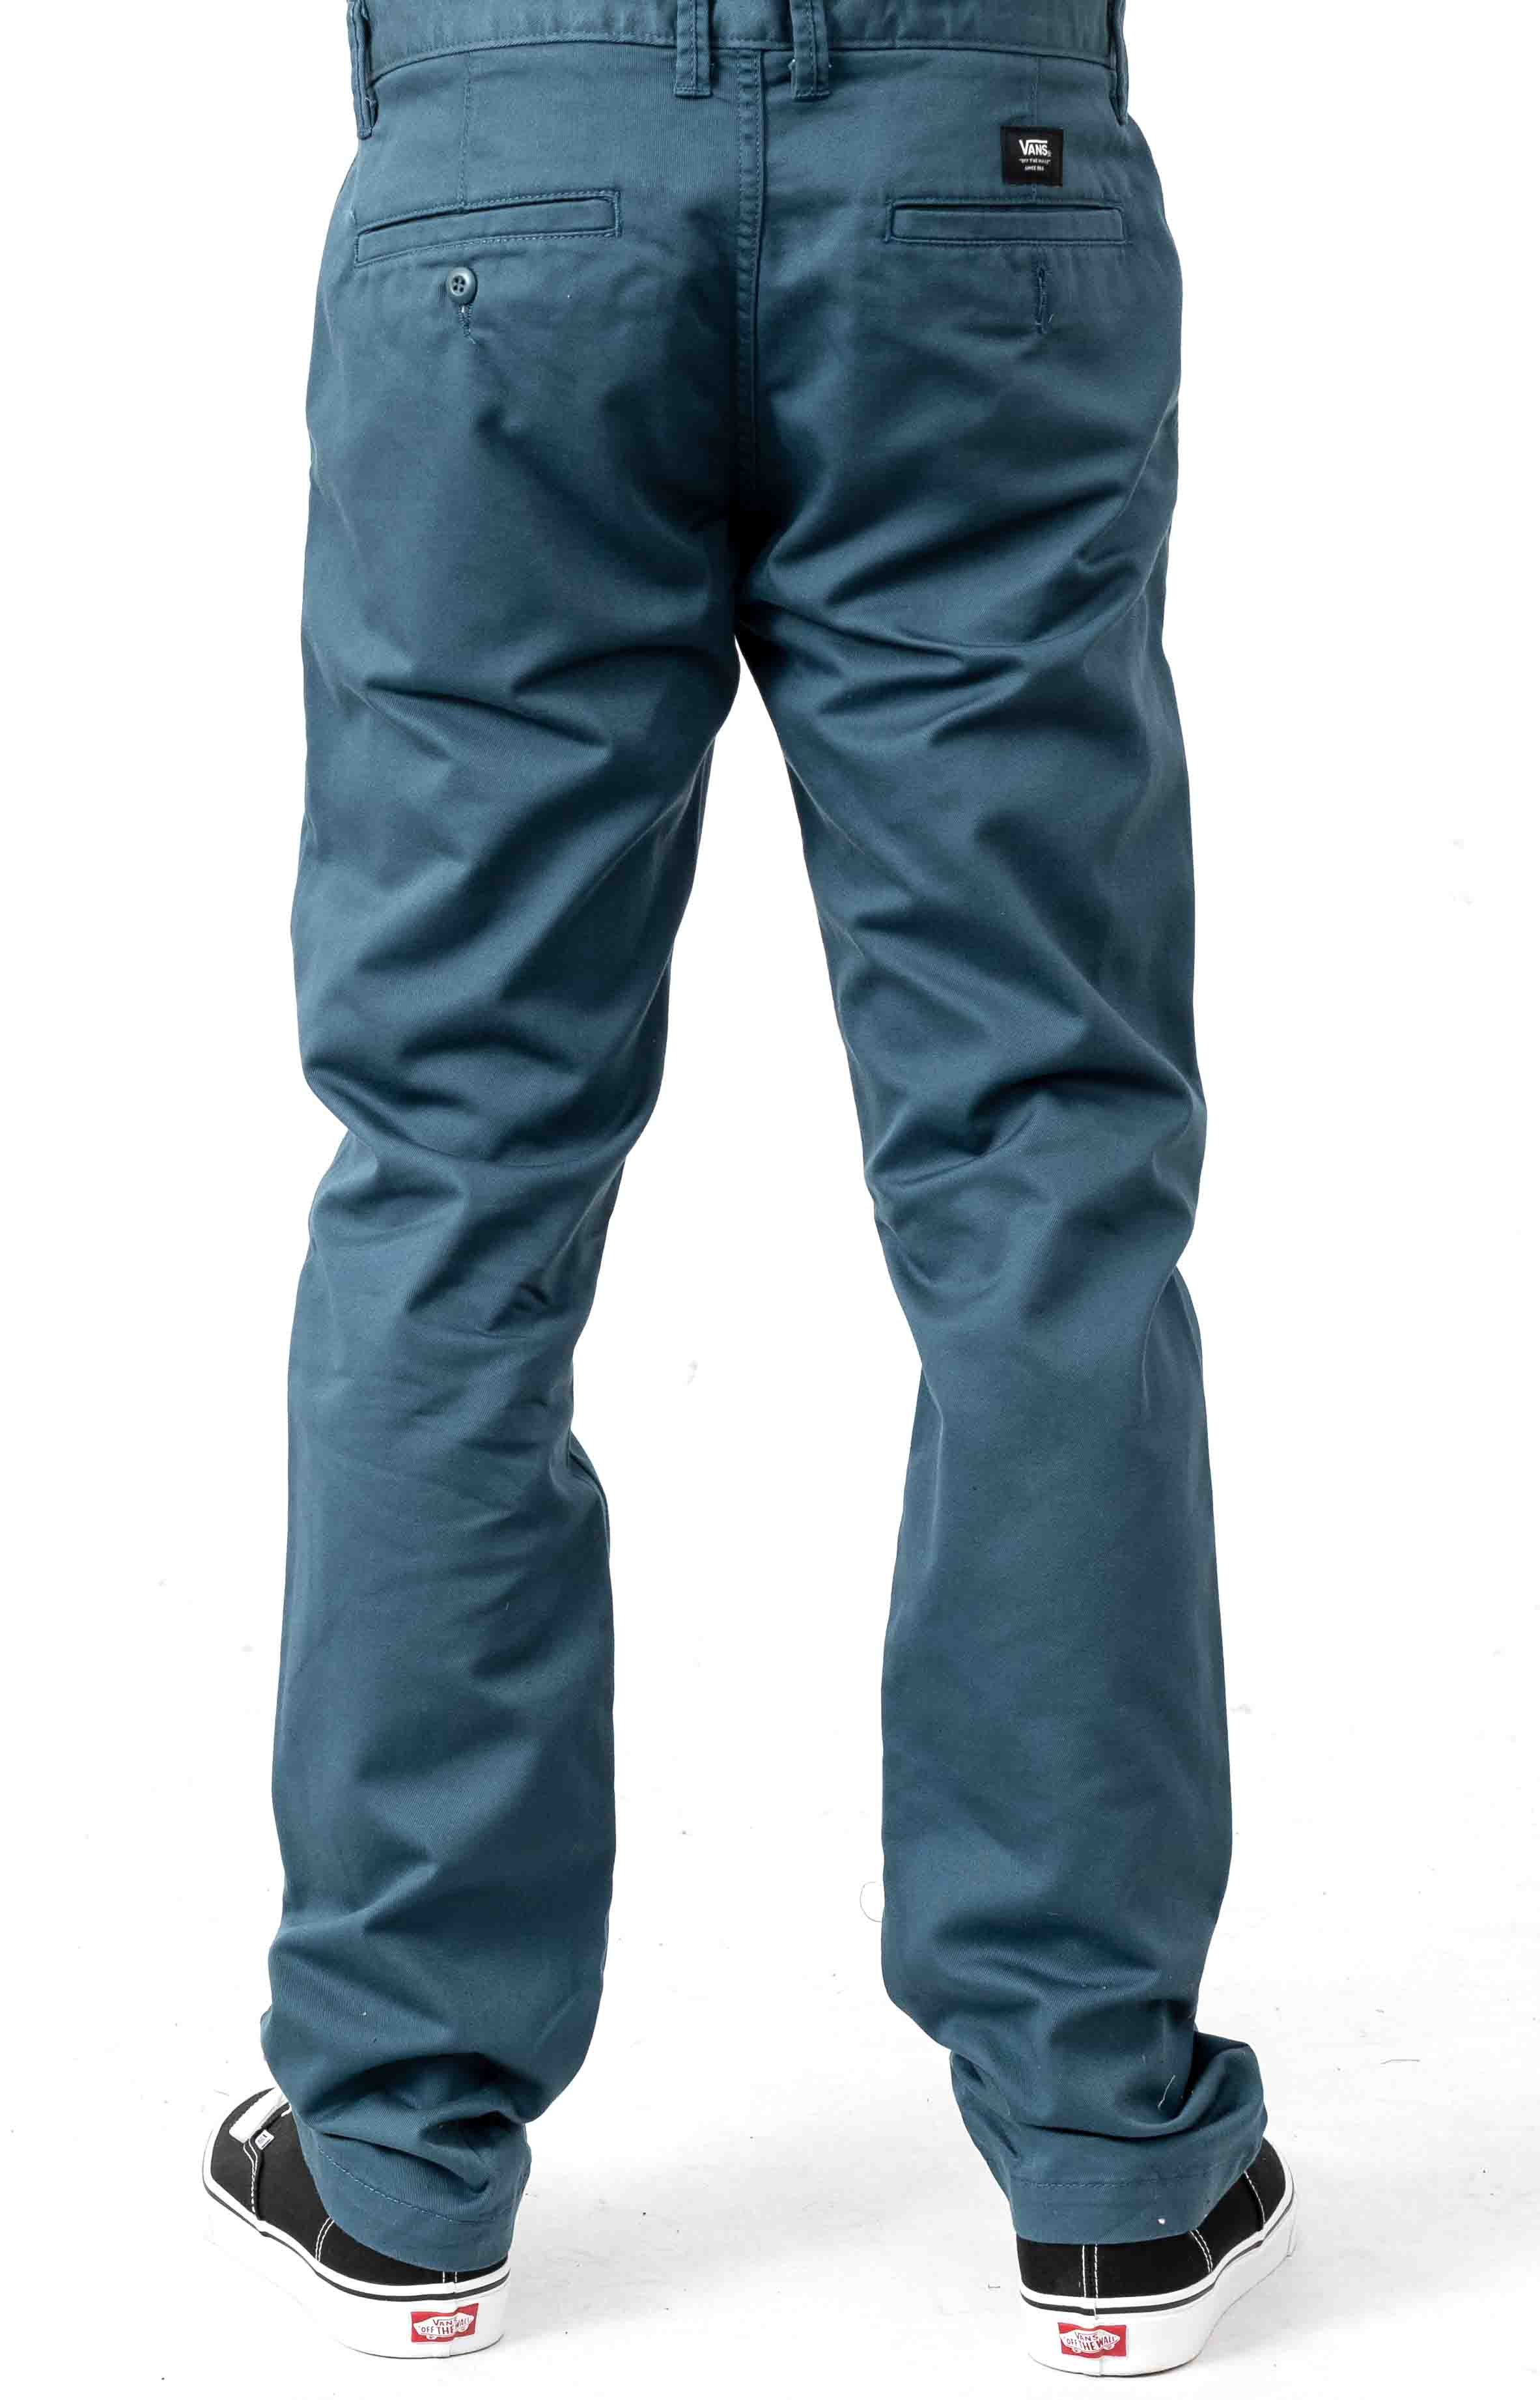 Authentic Chino Stretch Pant - Stargazer 3